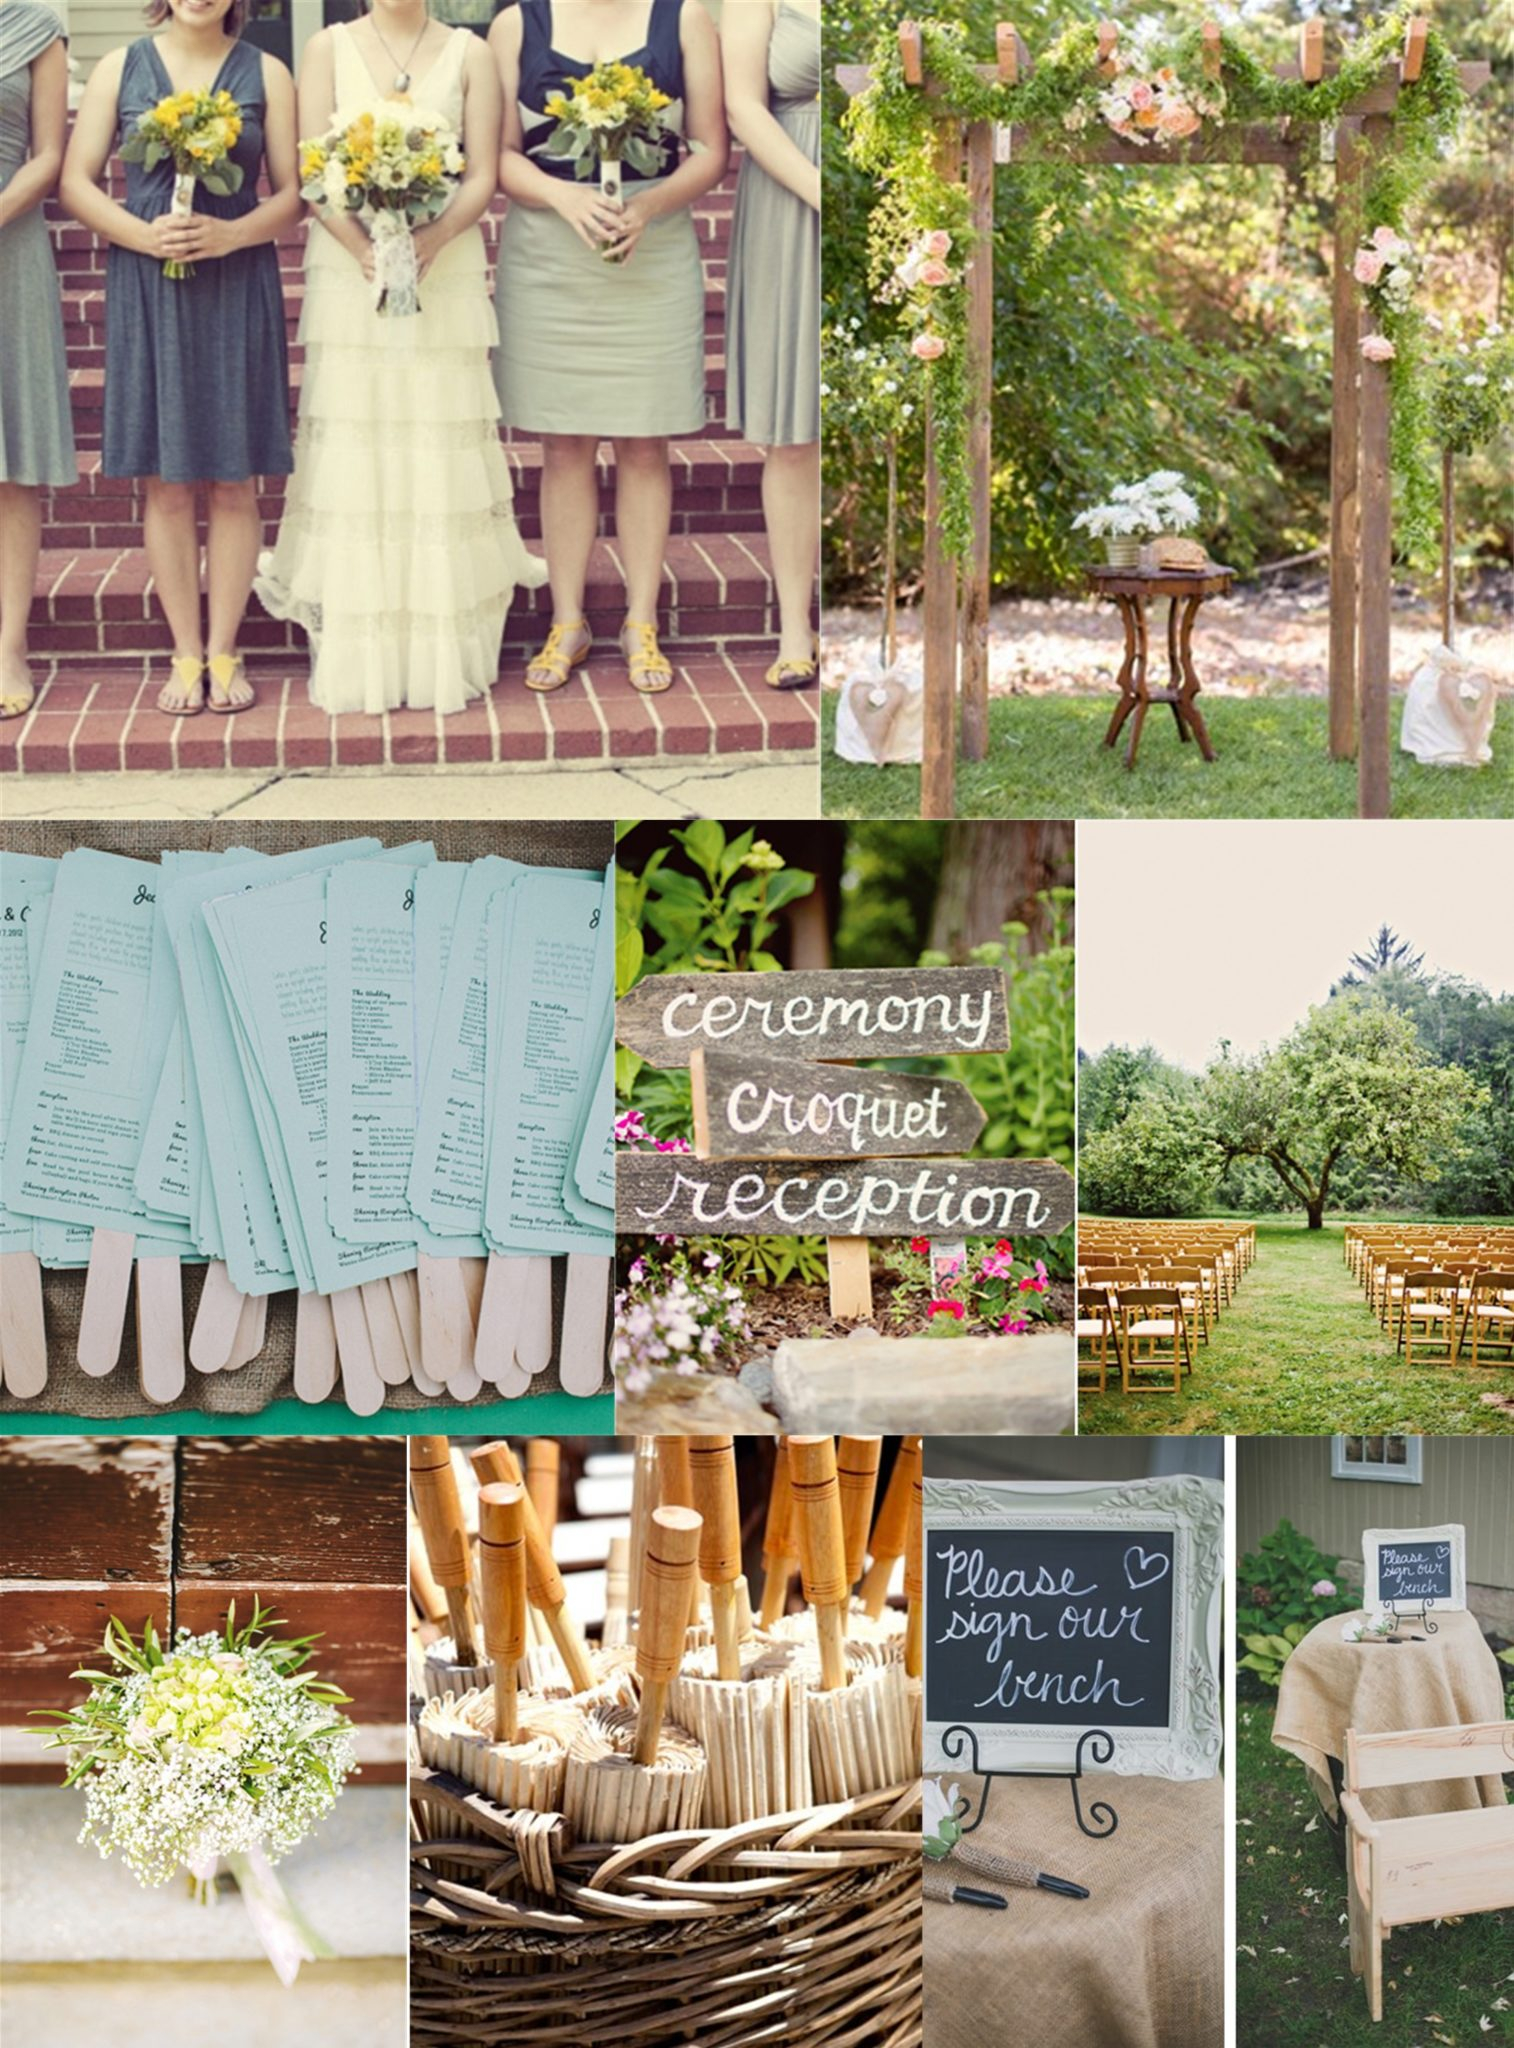 Essential Guide To A Backyard Wedding On A Budget intended for Cheap Backyard Wedding Ideas